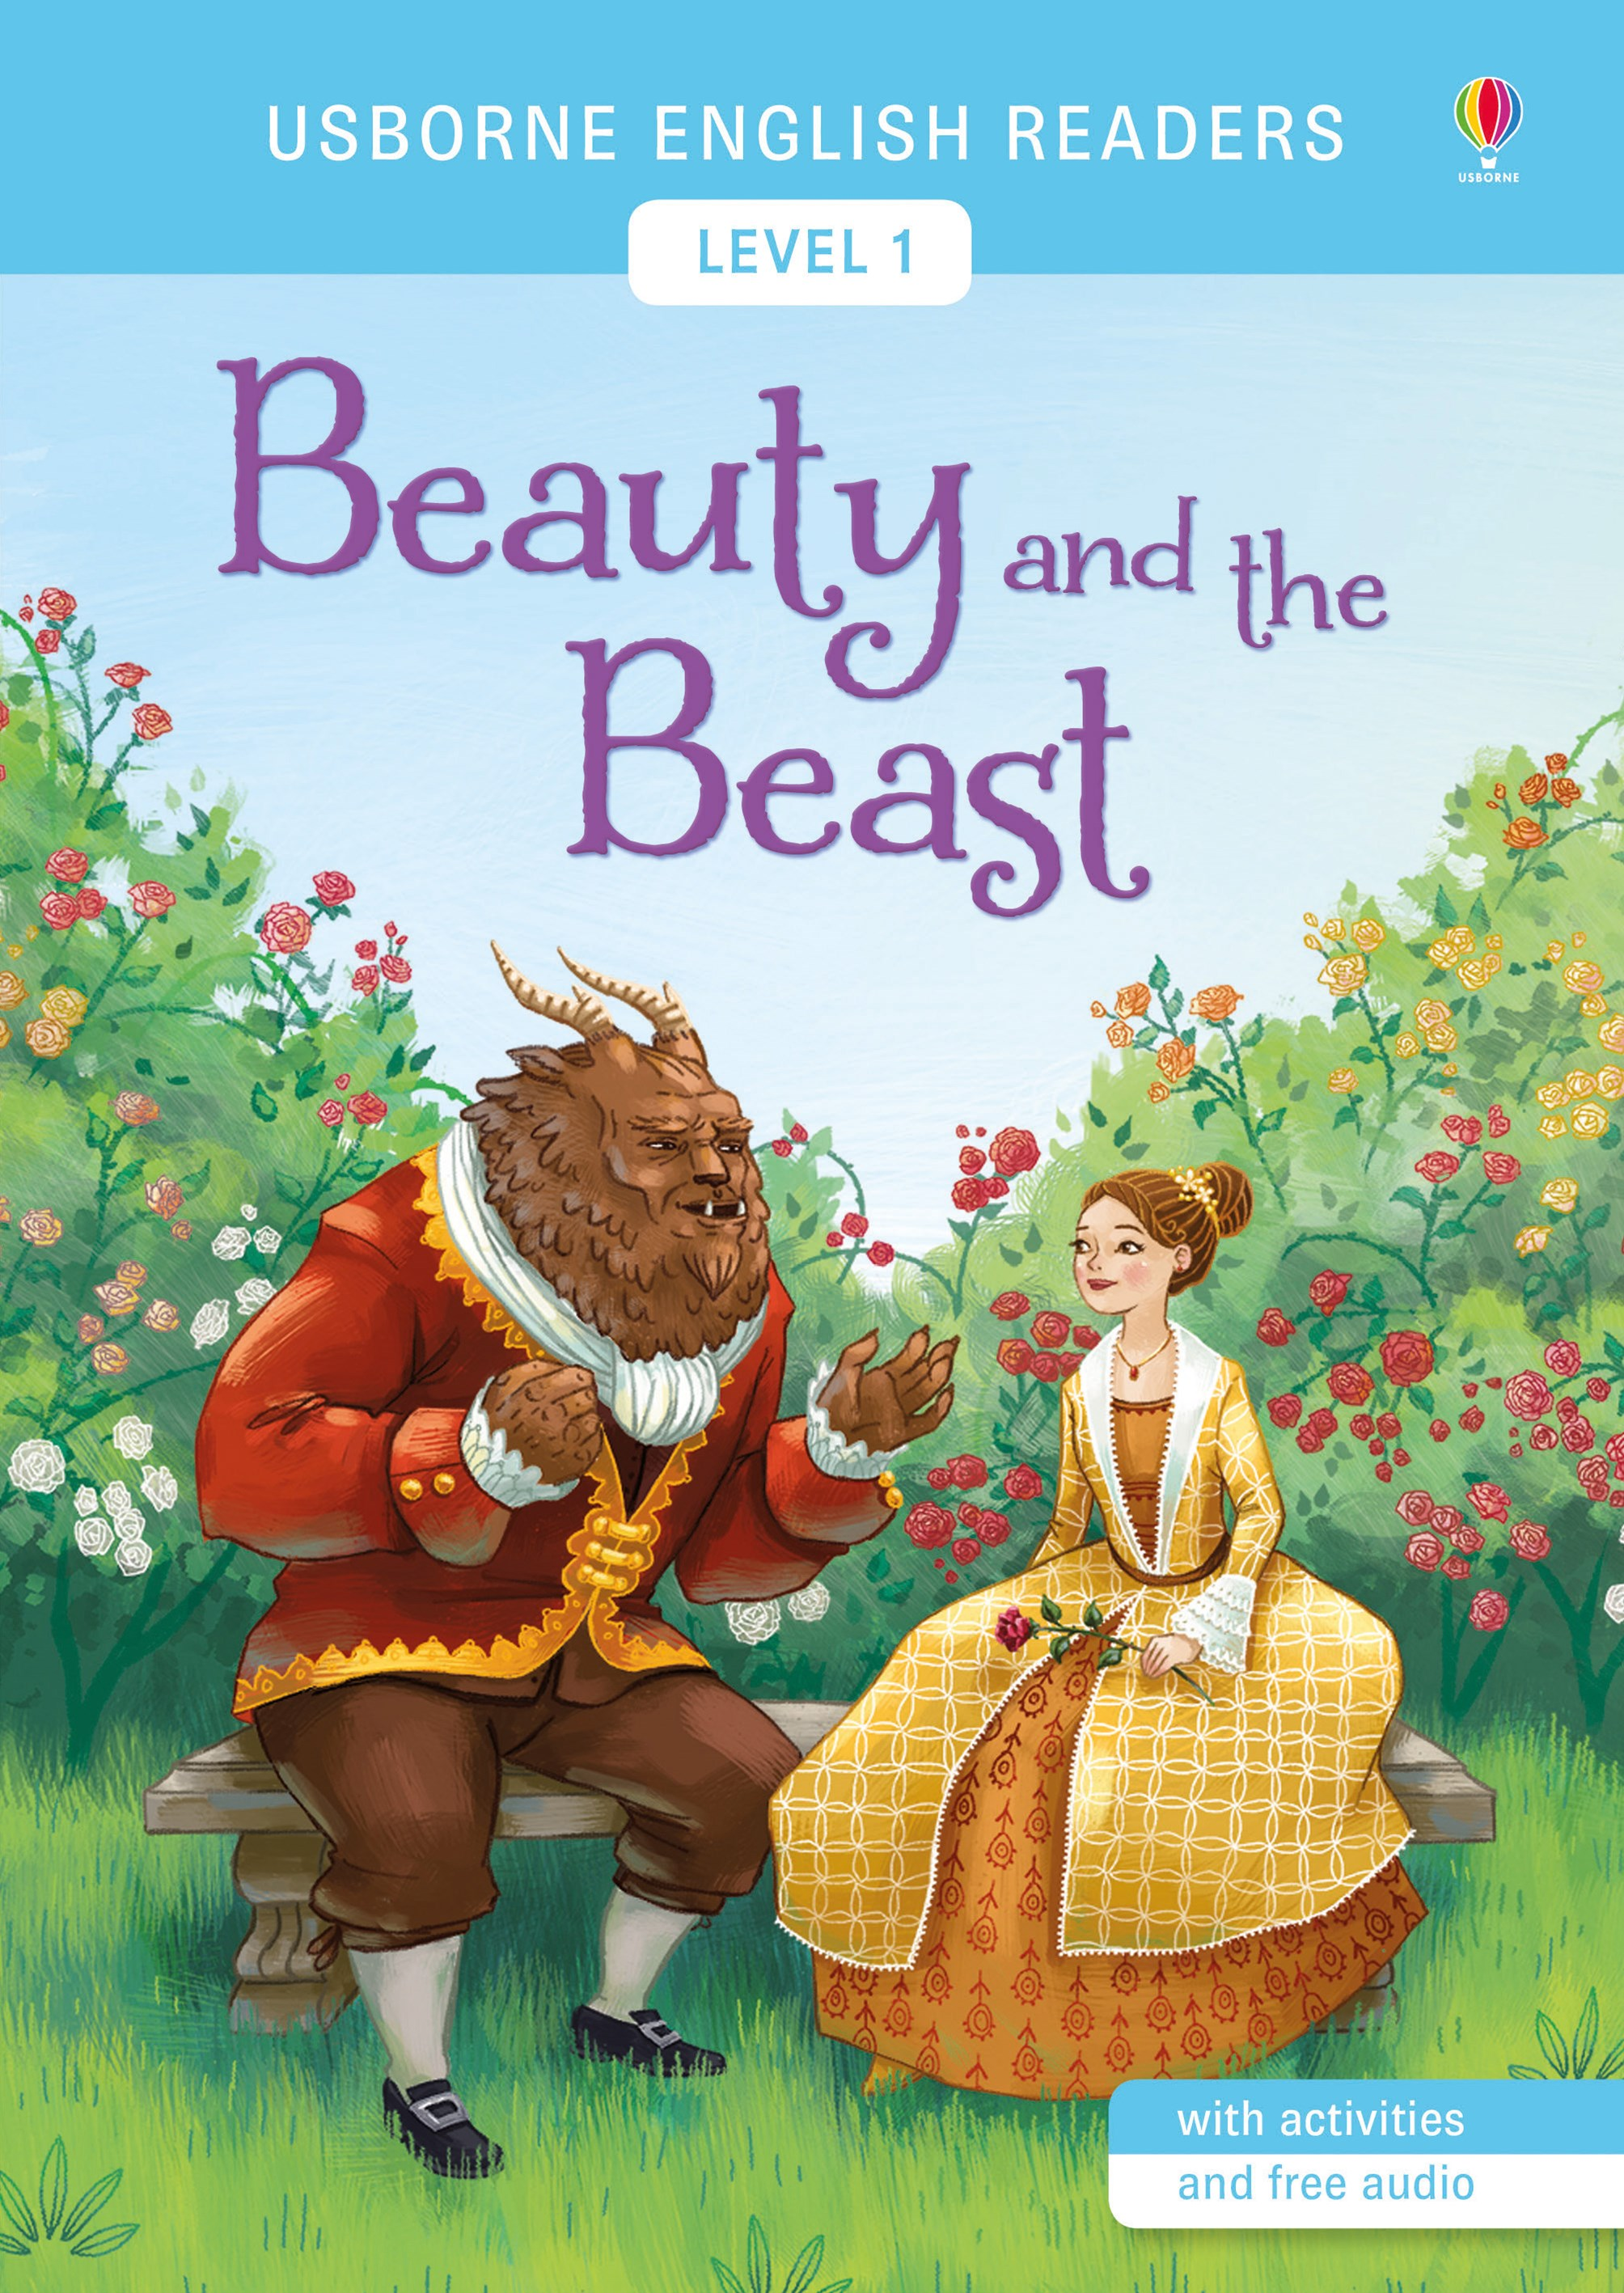 Usborne English Readers: Beauty and the Beast